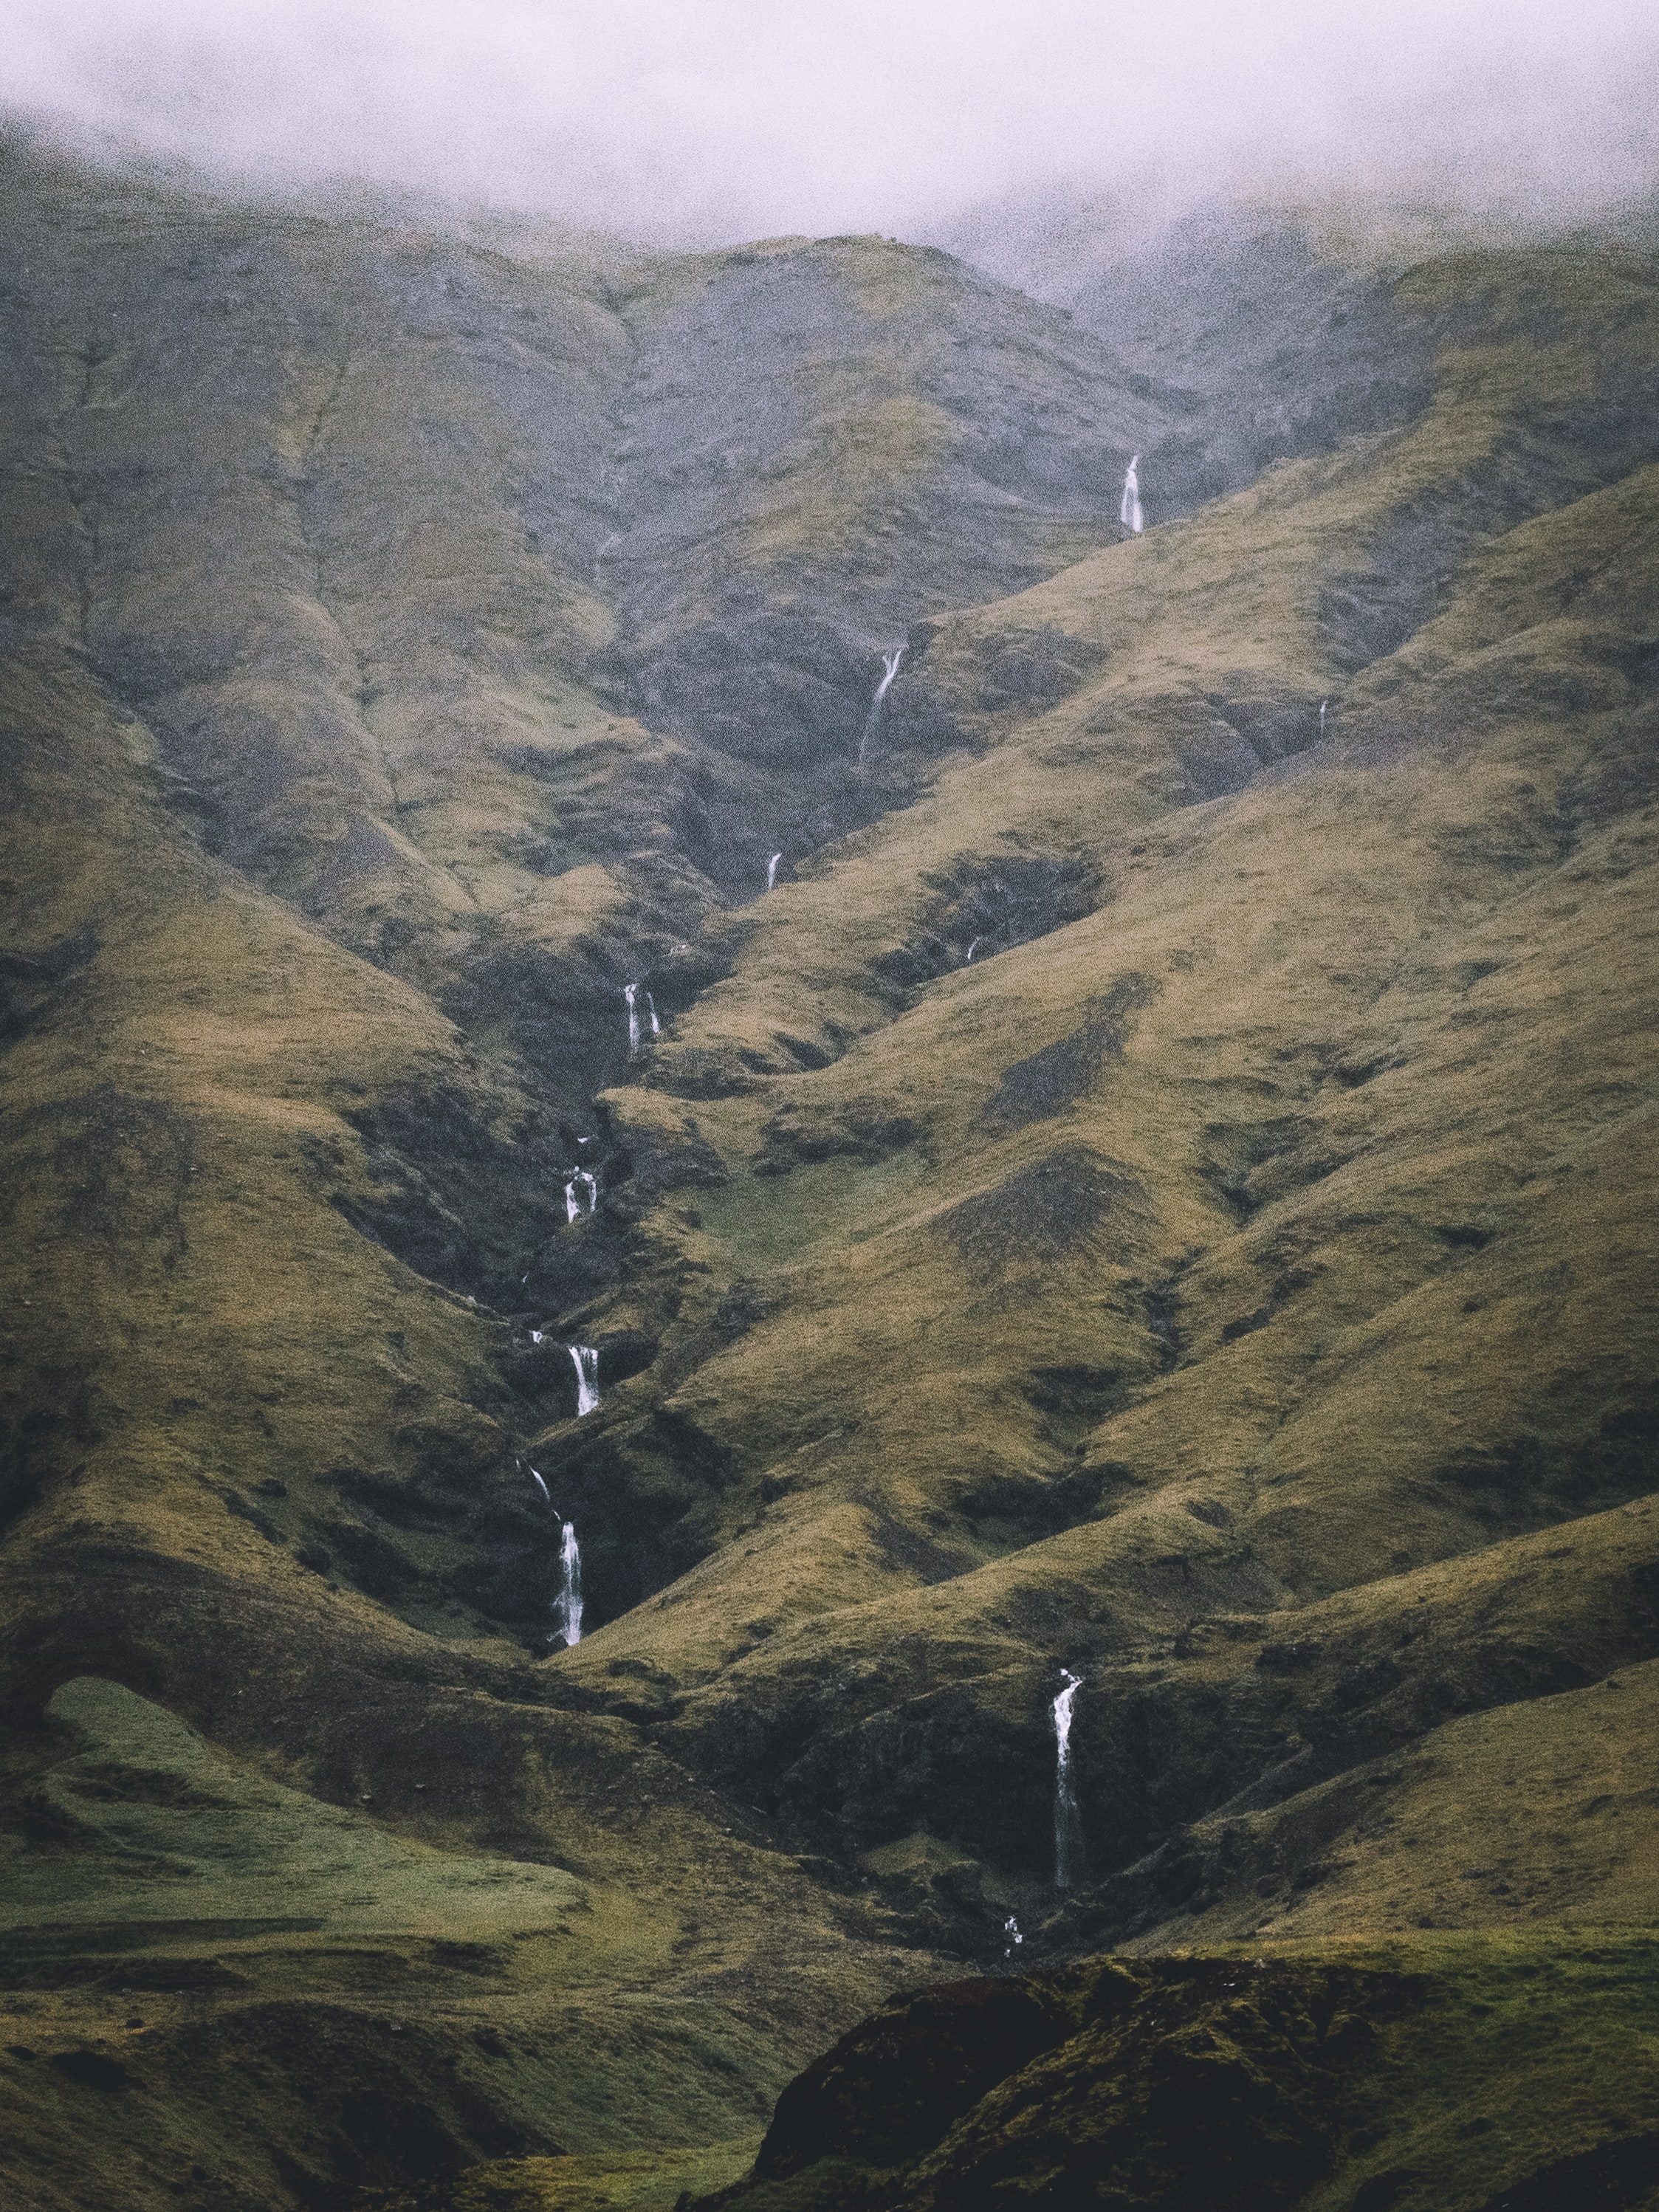 Line of waterfalls in the green, grassy mountains of Iceland